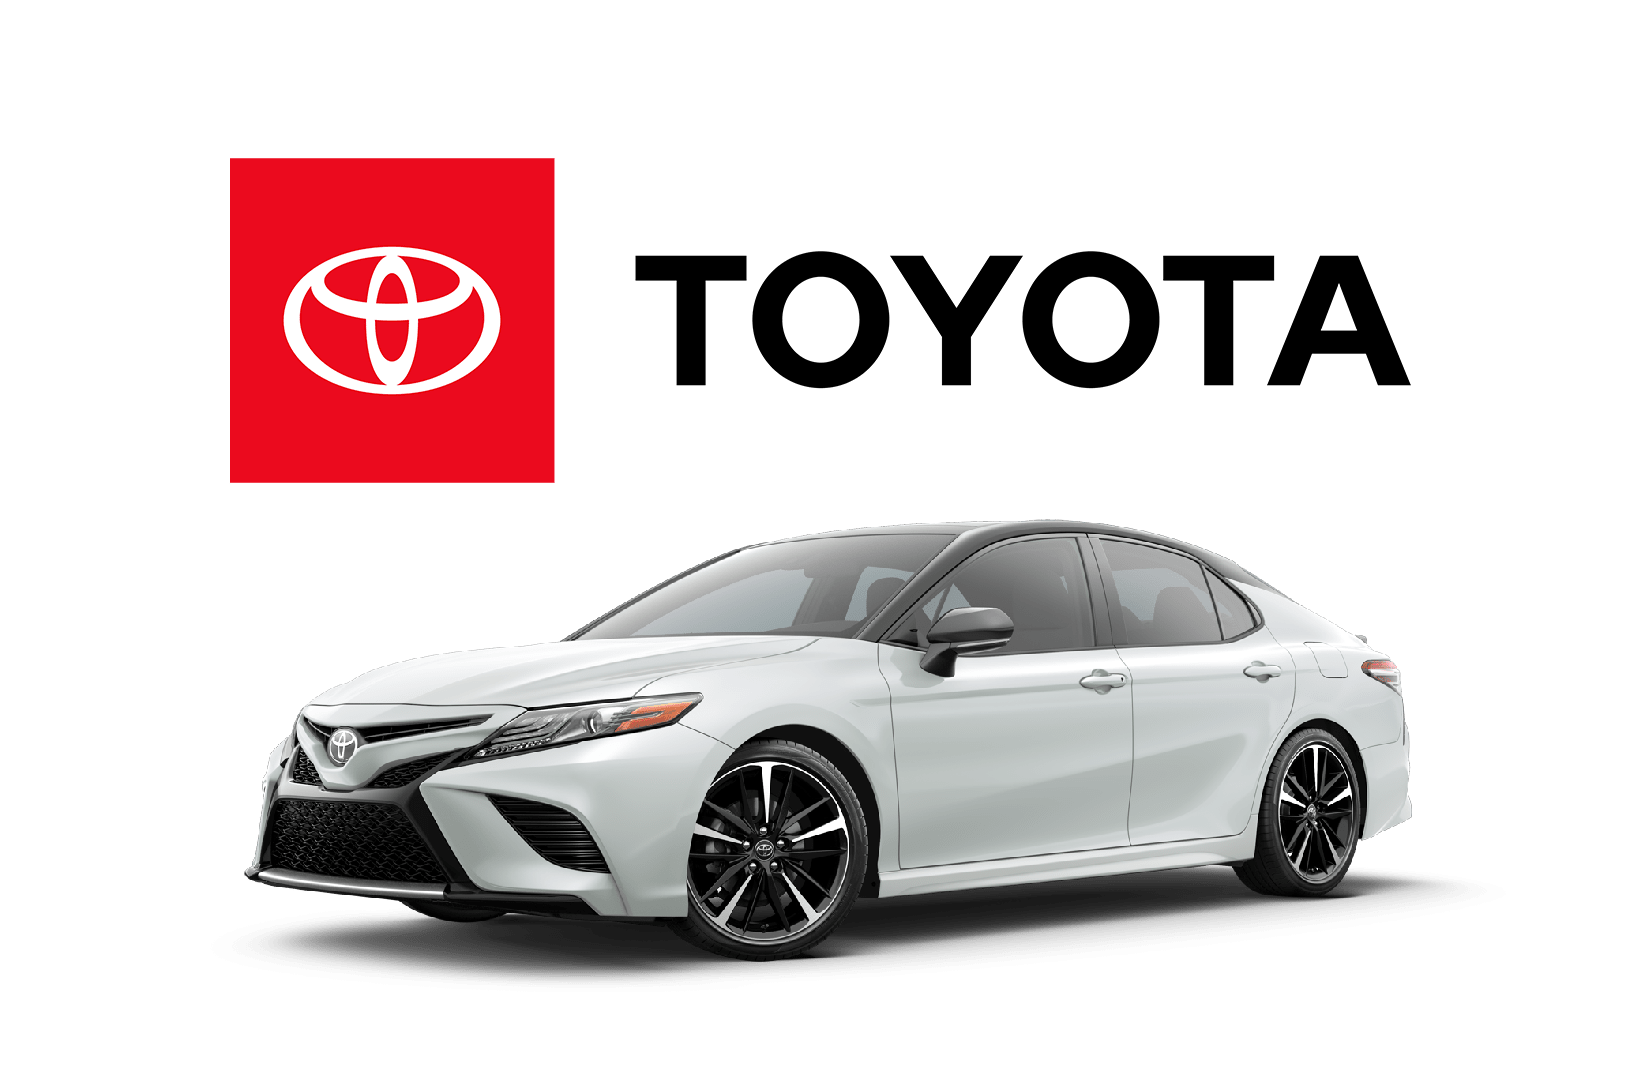 Toyota Car And Logo Image